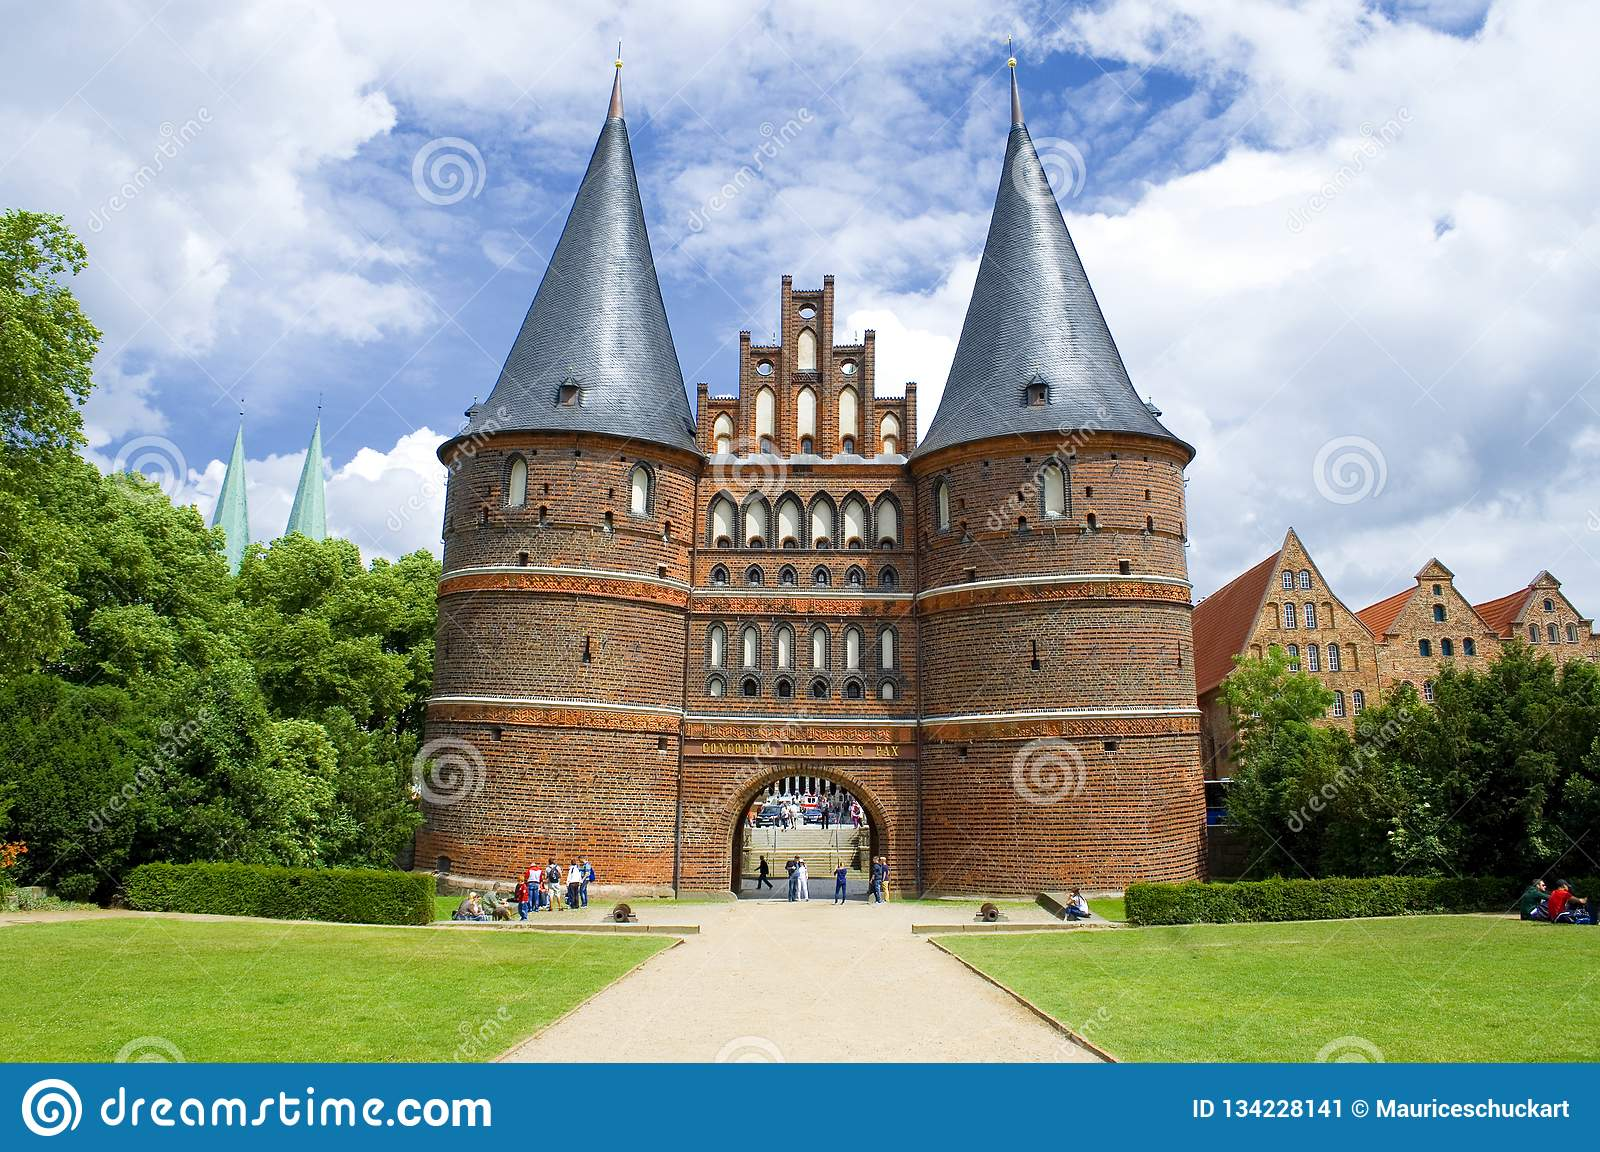 Old town gate in Lubeck Germany called Holstentor on public ground